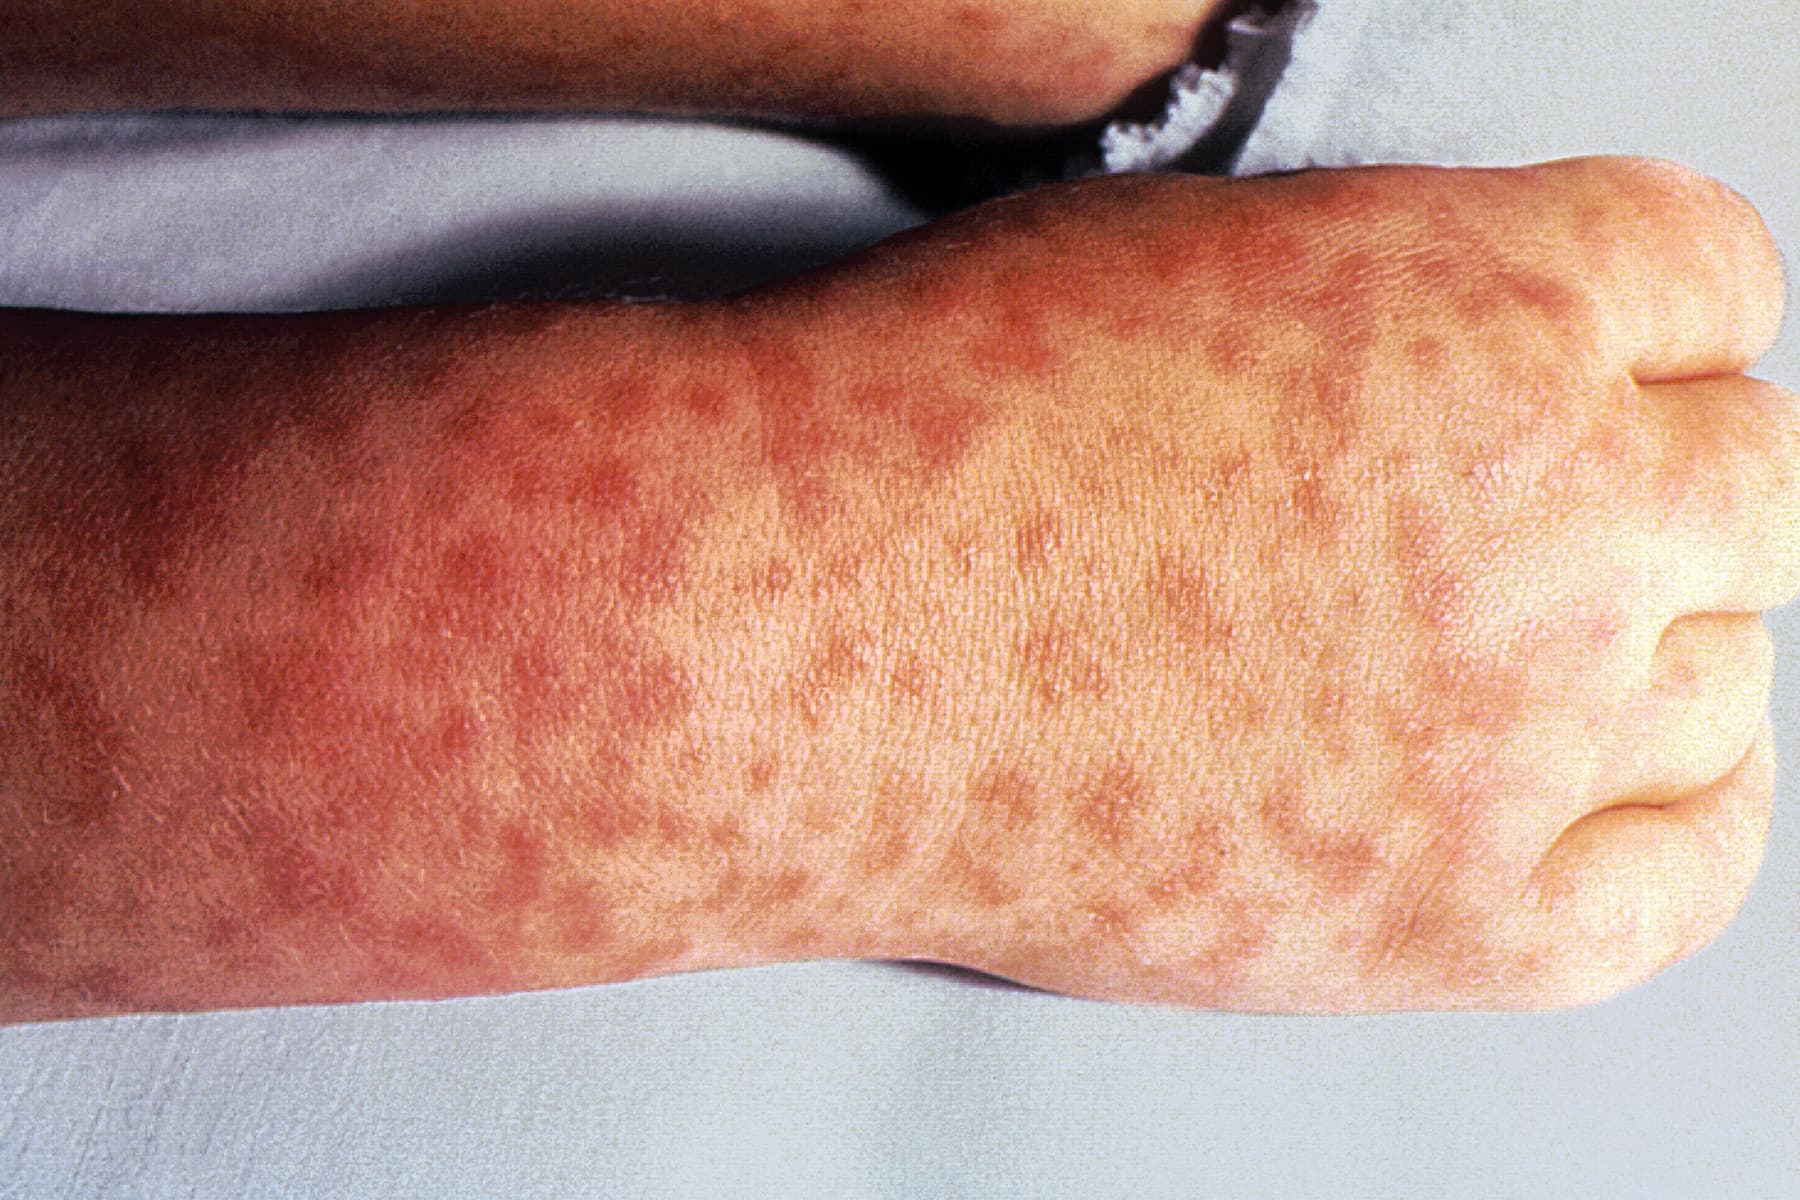 That interfere, rash after fever adult